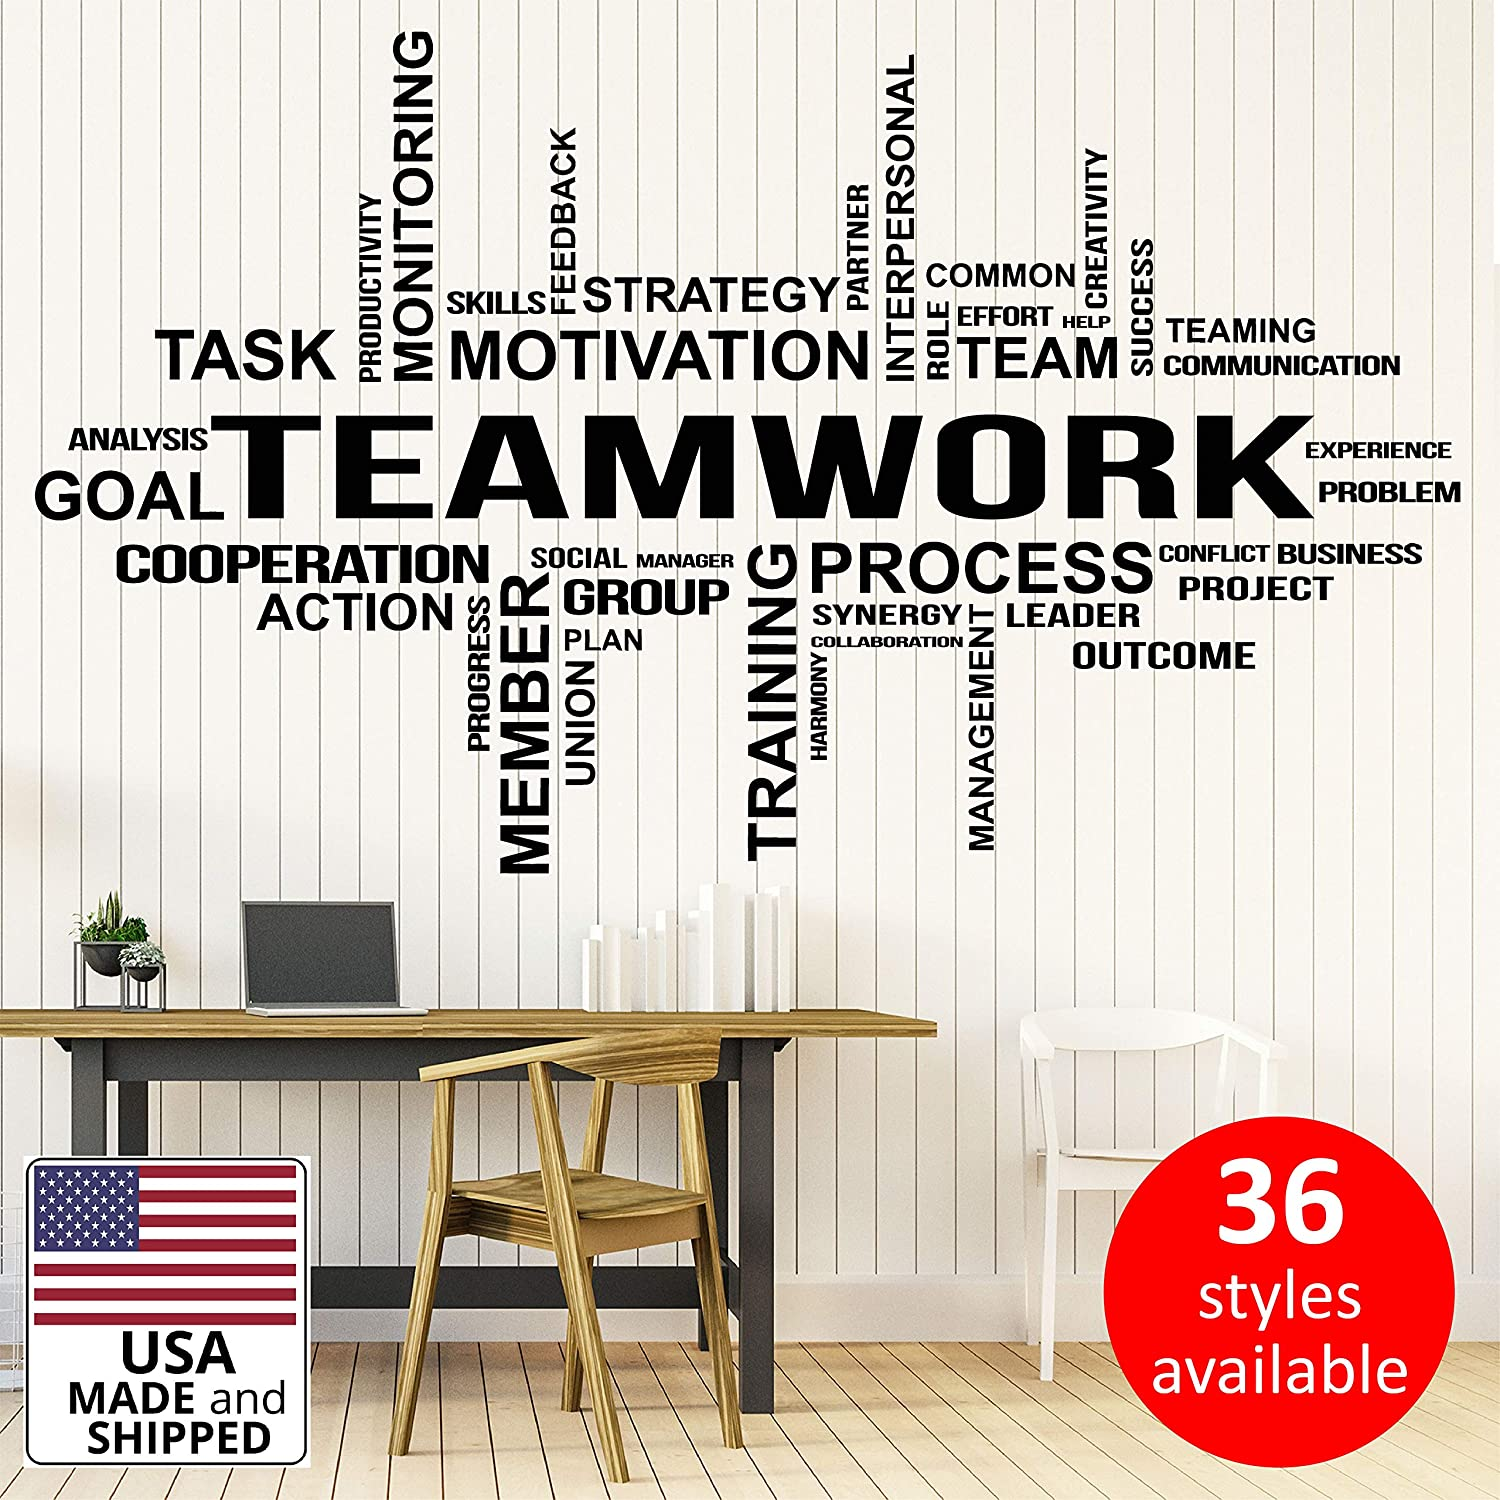 21 x 35 in Office Wall Vinyl Art Decor - Teamwork Decals Motivational Inspirational Quotes Sayings - Team Work Stickers Decoration Positive Words Letterings OF-005